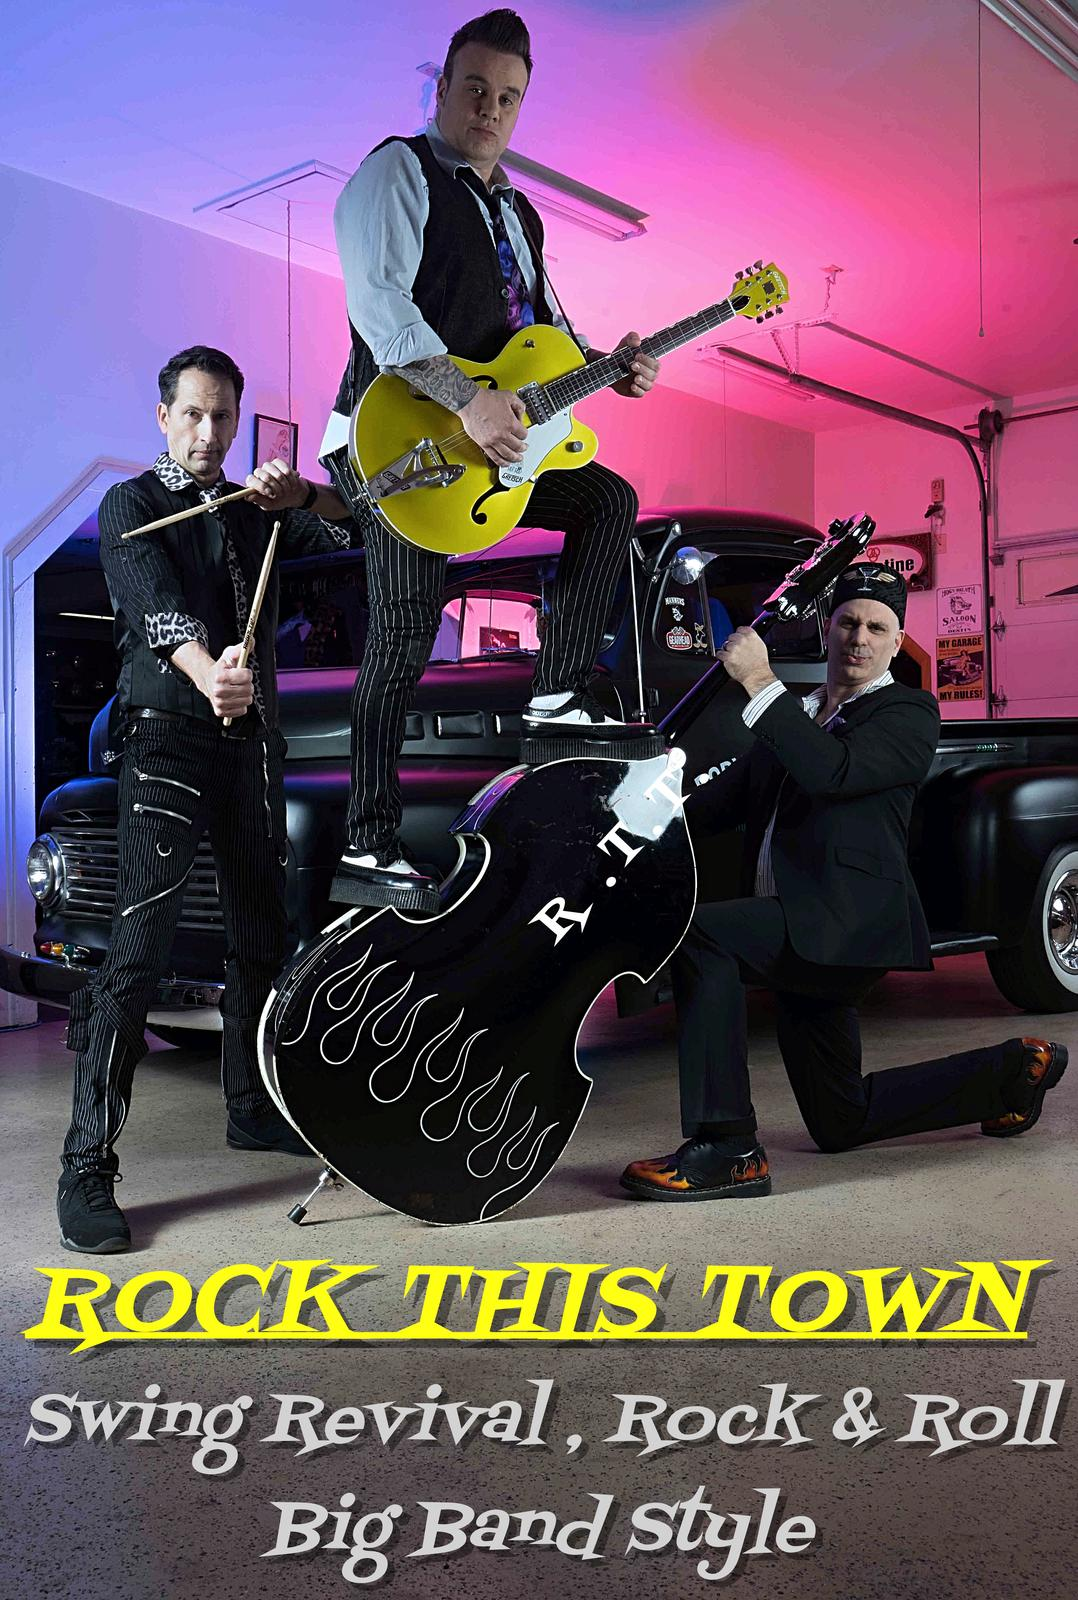 rock-this-town-trio-instr-name-descrip-1